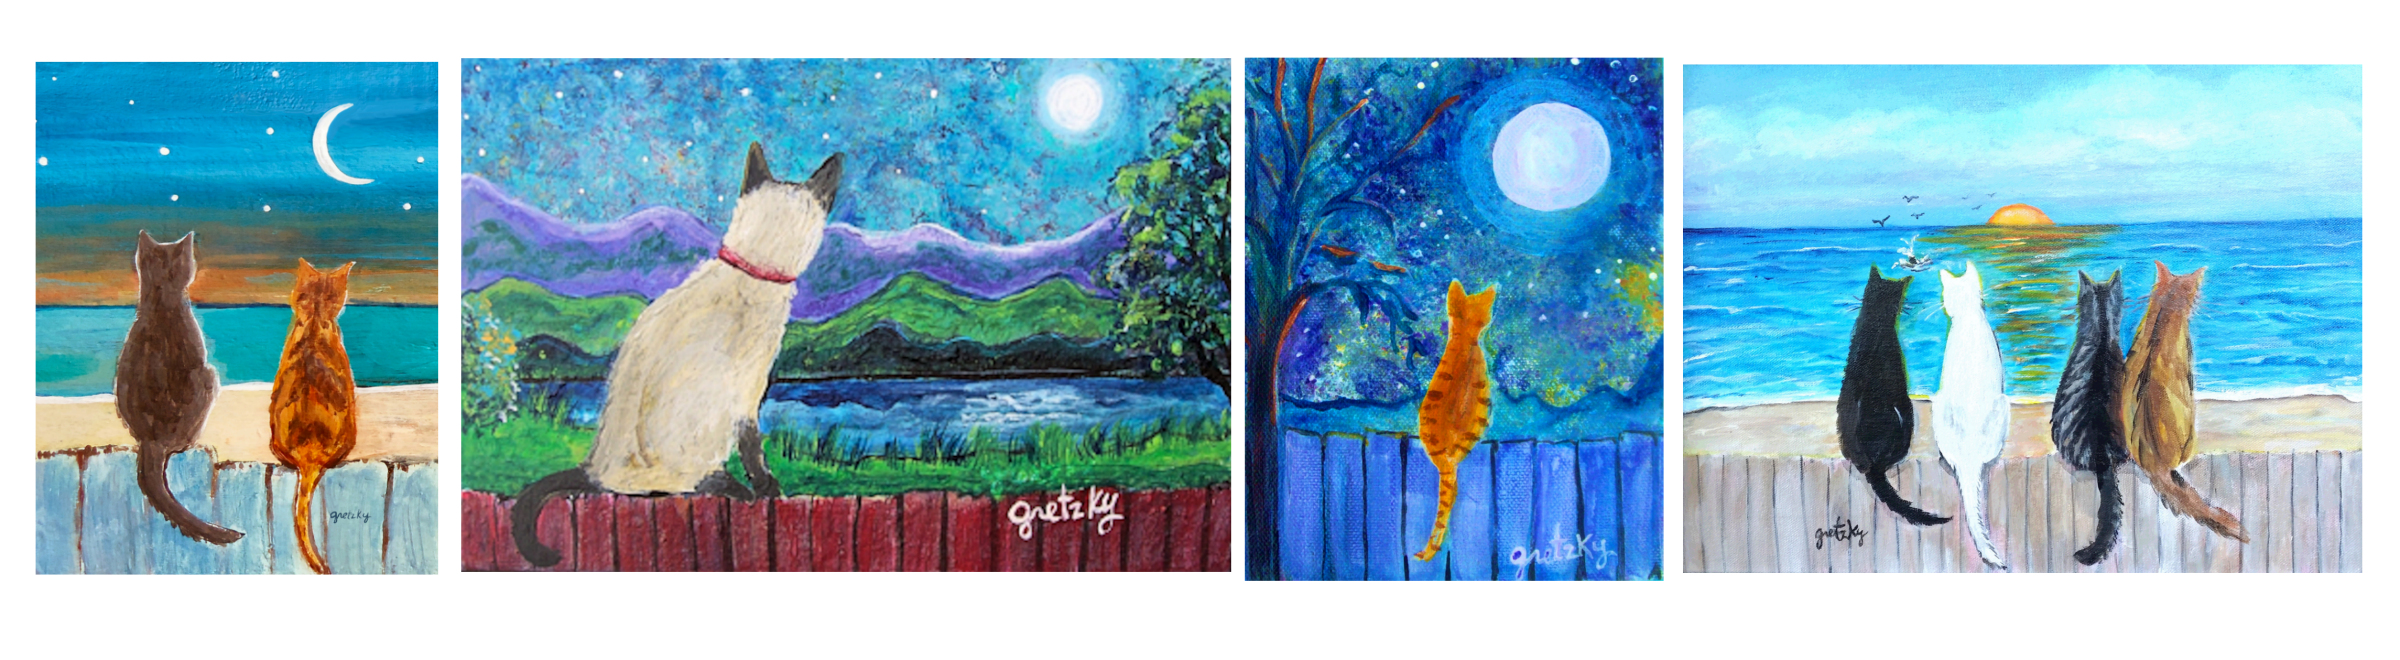 Paintings of Cats on Fences